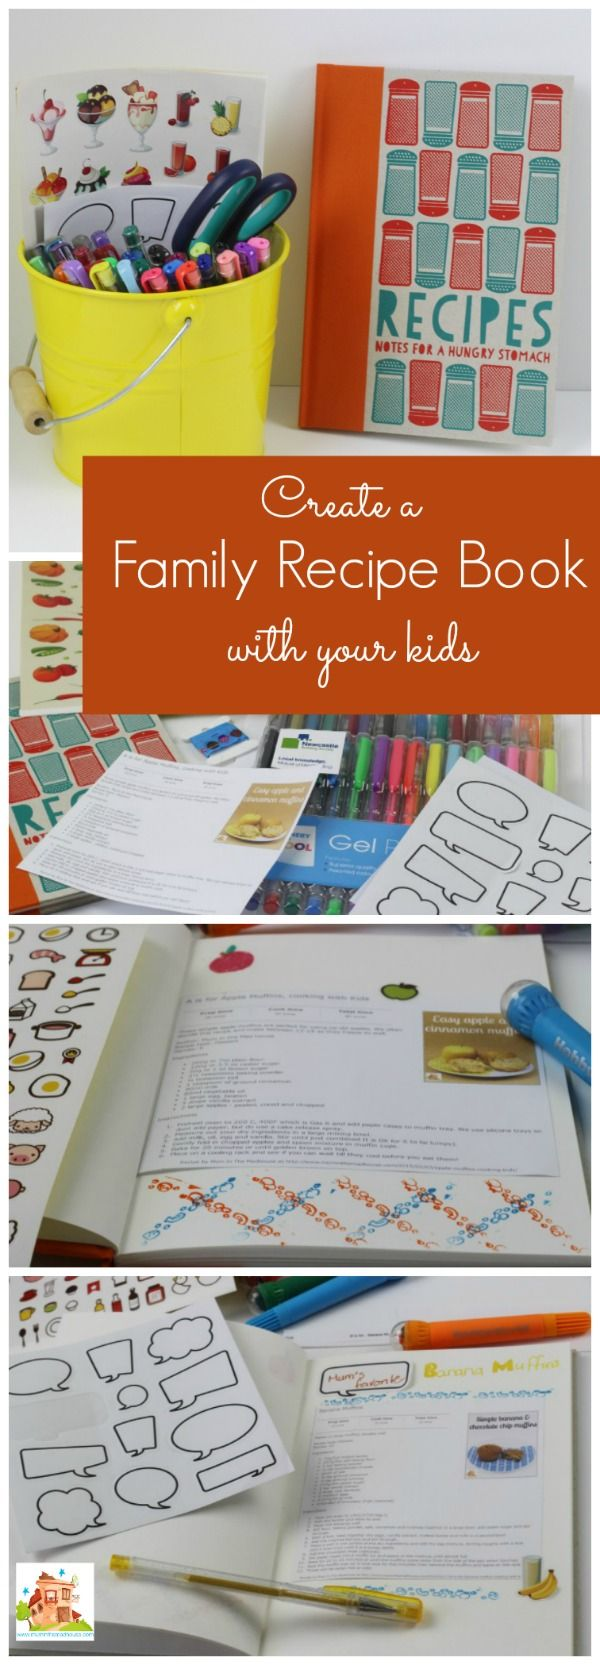 Ms de 25 ideas fantsticas sobre family recipe book en pinterest tips for creating a family recipe book with the kids as a family who looks solutioingenieria Image collections